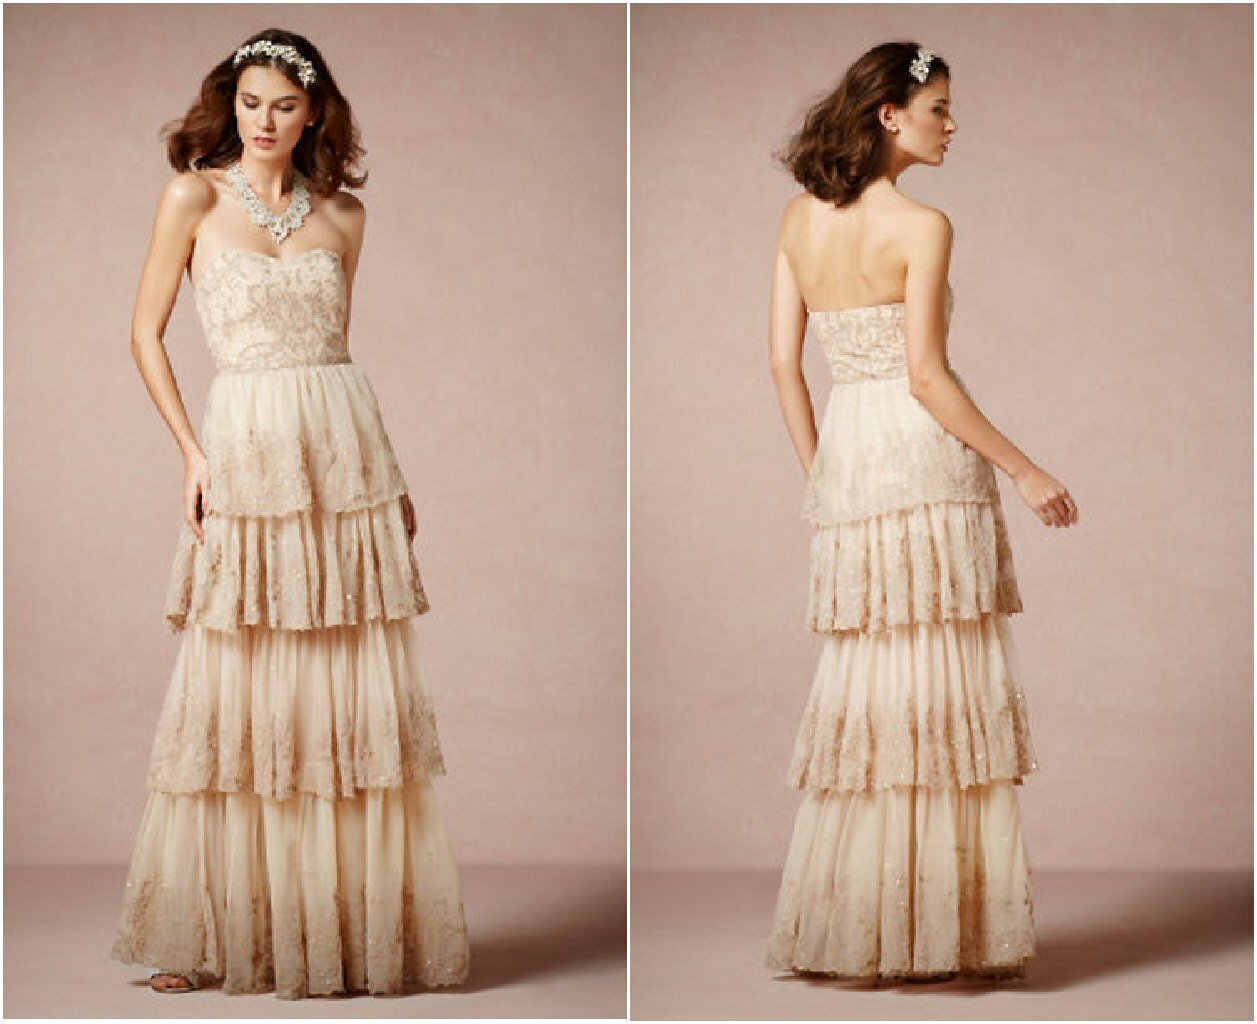 Wedding dresses for rustic weddings: Pictures ideas, Guide to buying ...